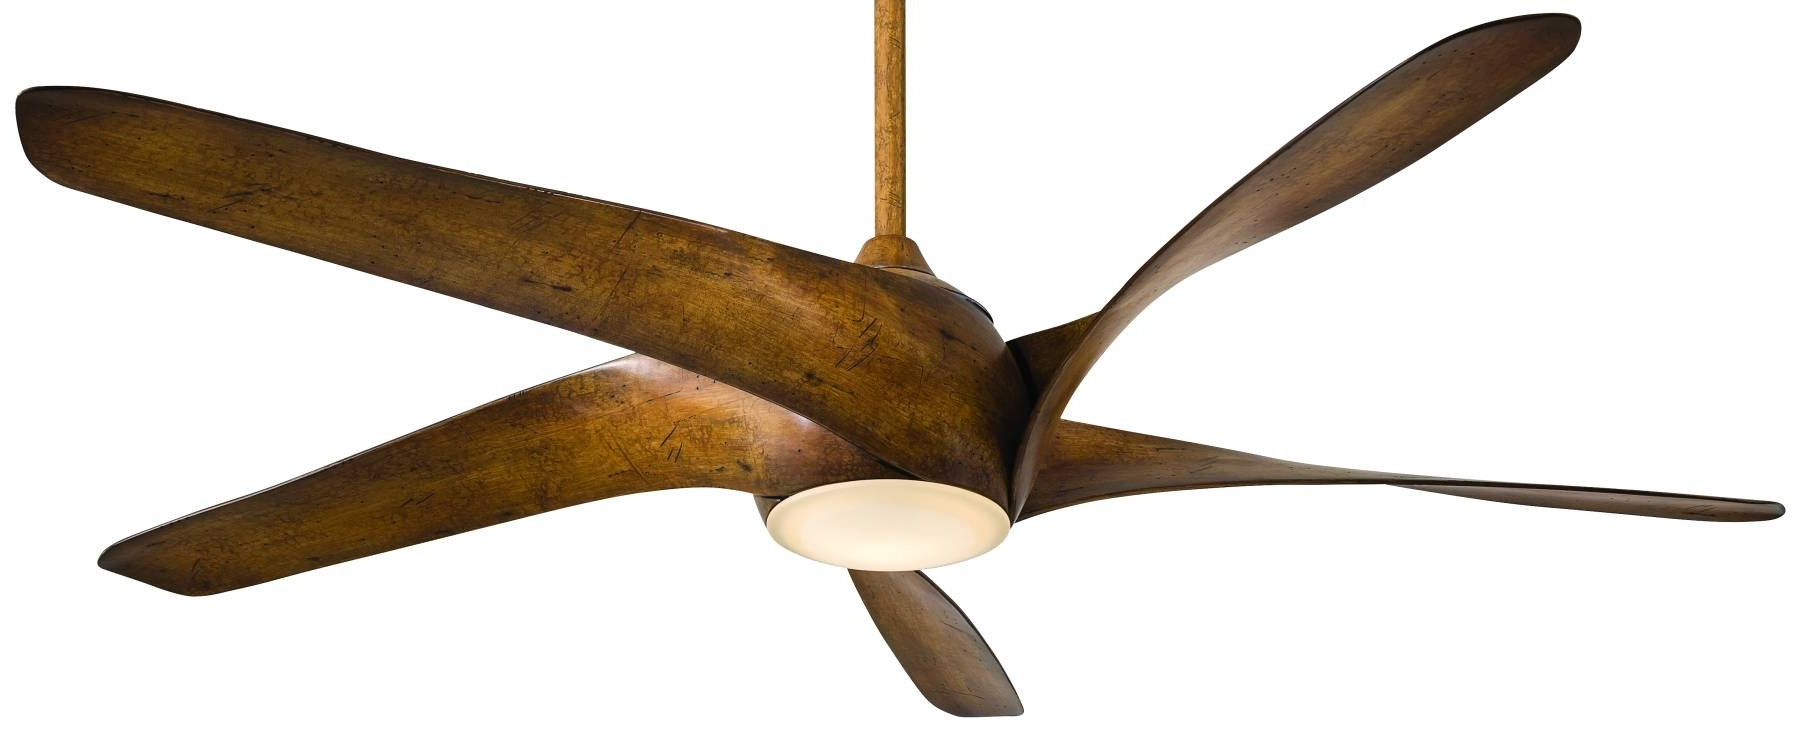 Oversized Outdoor Ceiling Fans Intended For Well Known Ceiling Fan: Amazing Large Ceiling Fans For Home Extra Large Ceiling (View 13 of 20)